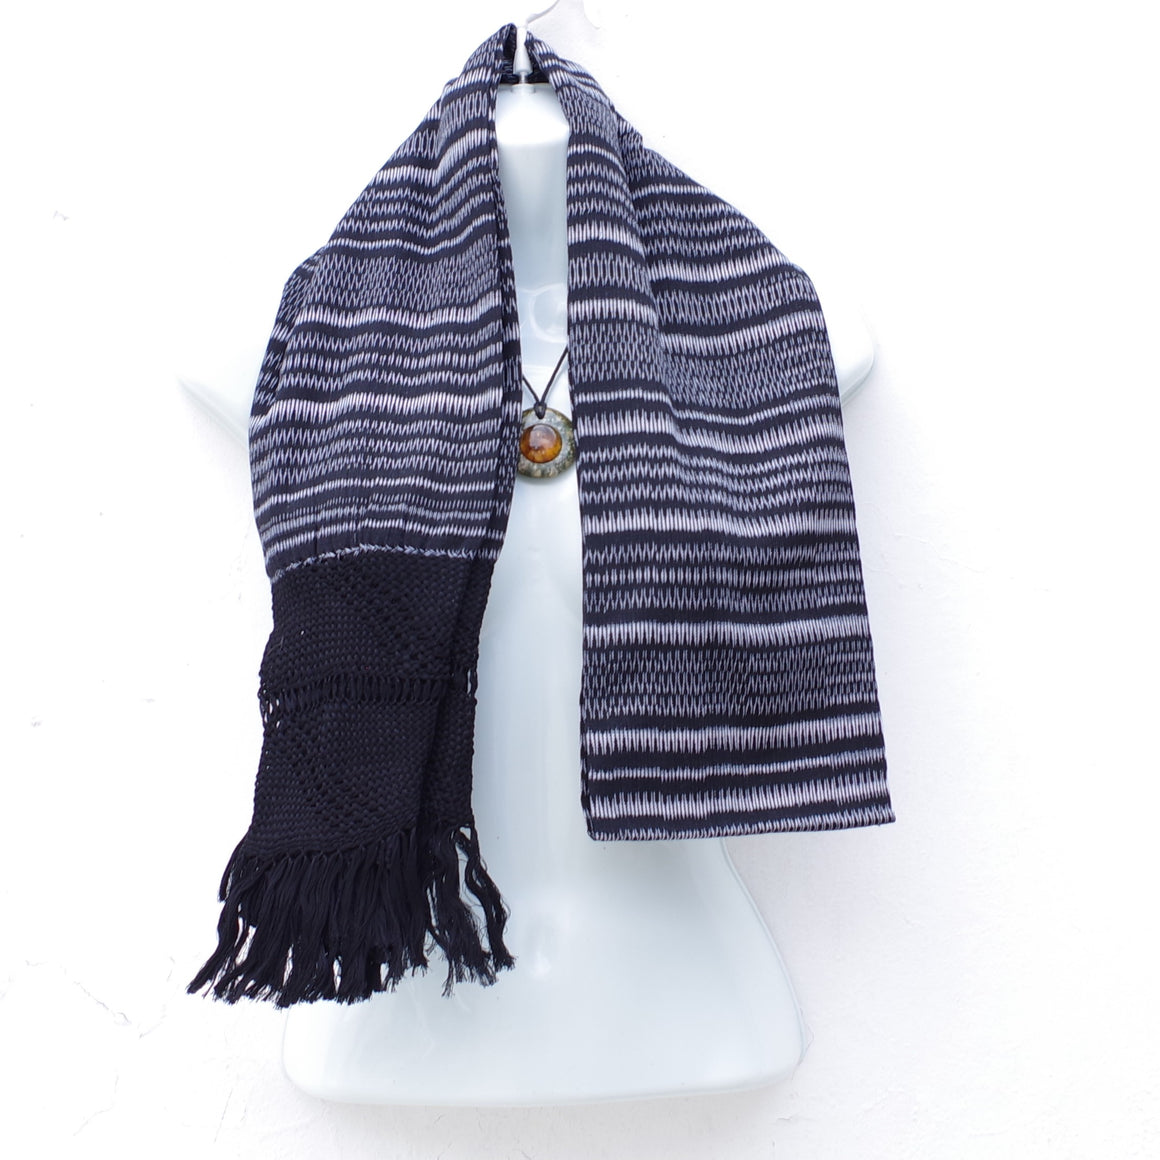 Mayan Copal Mexican Handwoven Black and White Rebozo Shawl Wrap Scarf Runner From Tenancingo